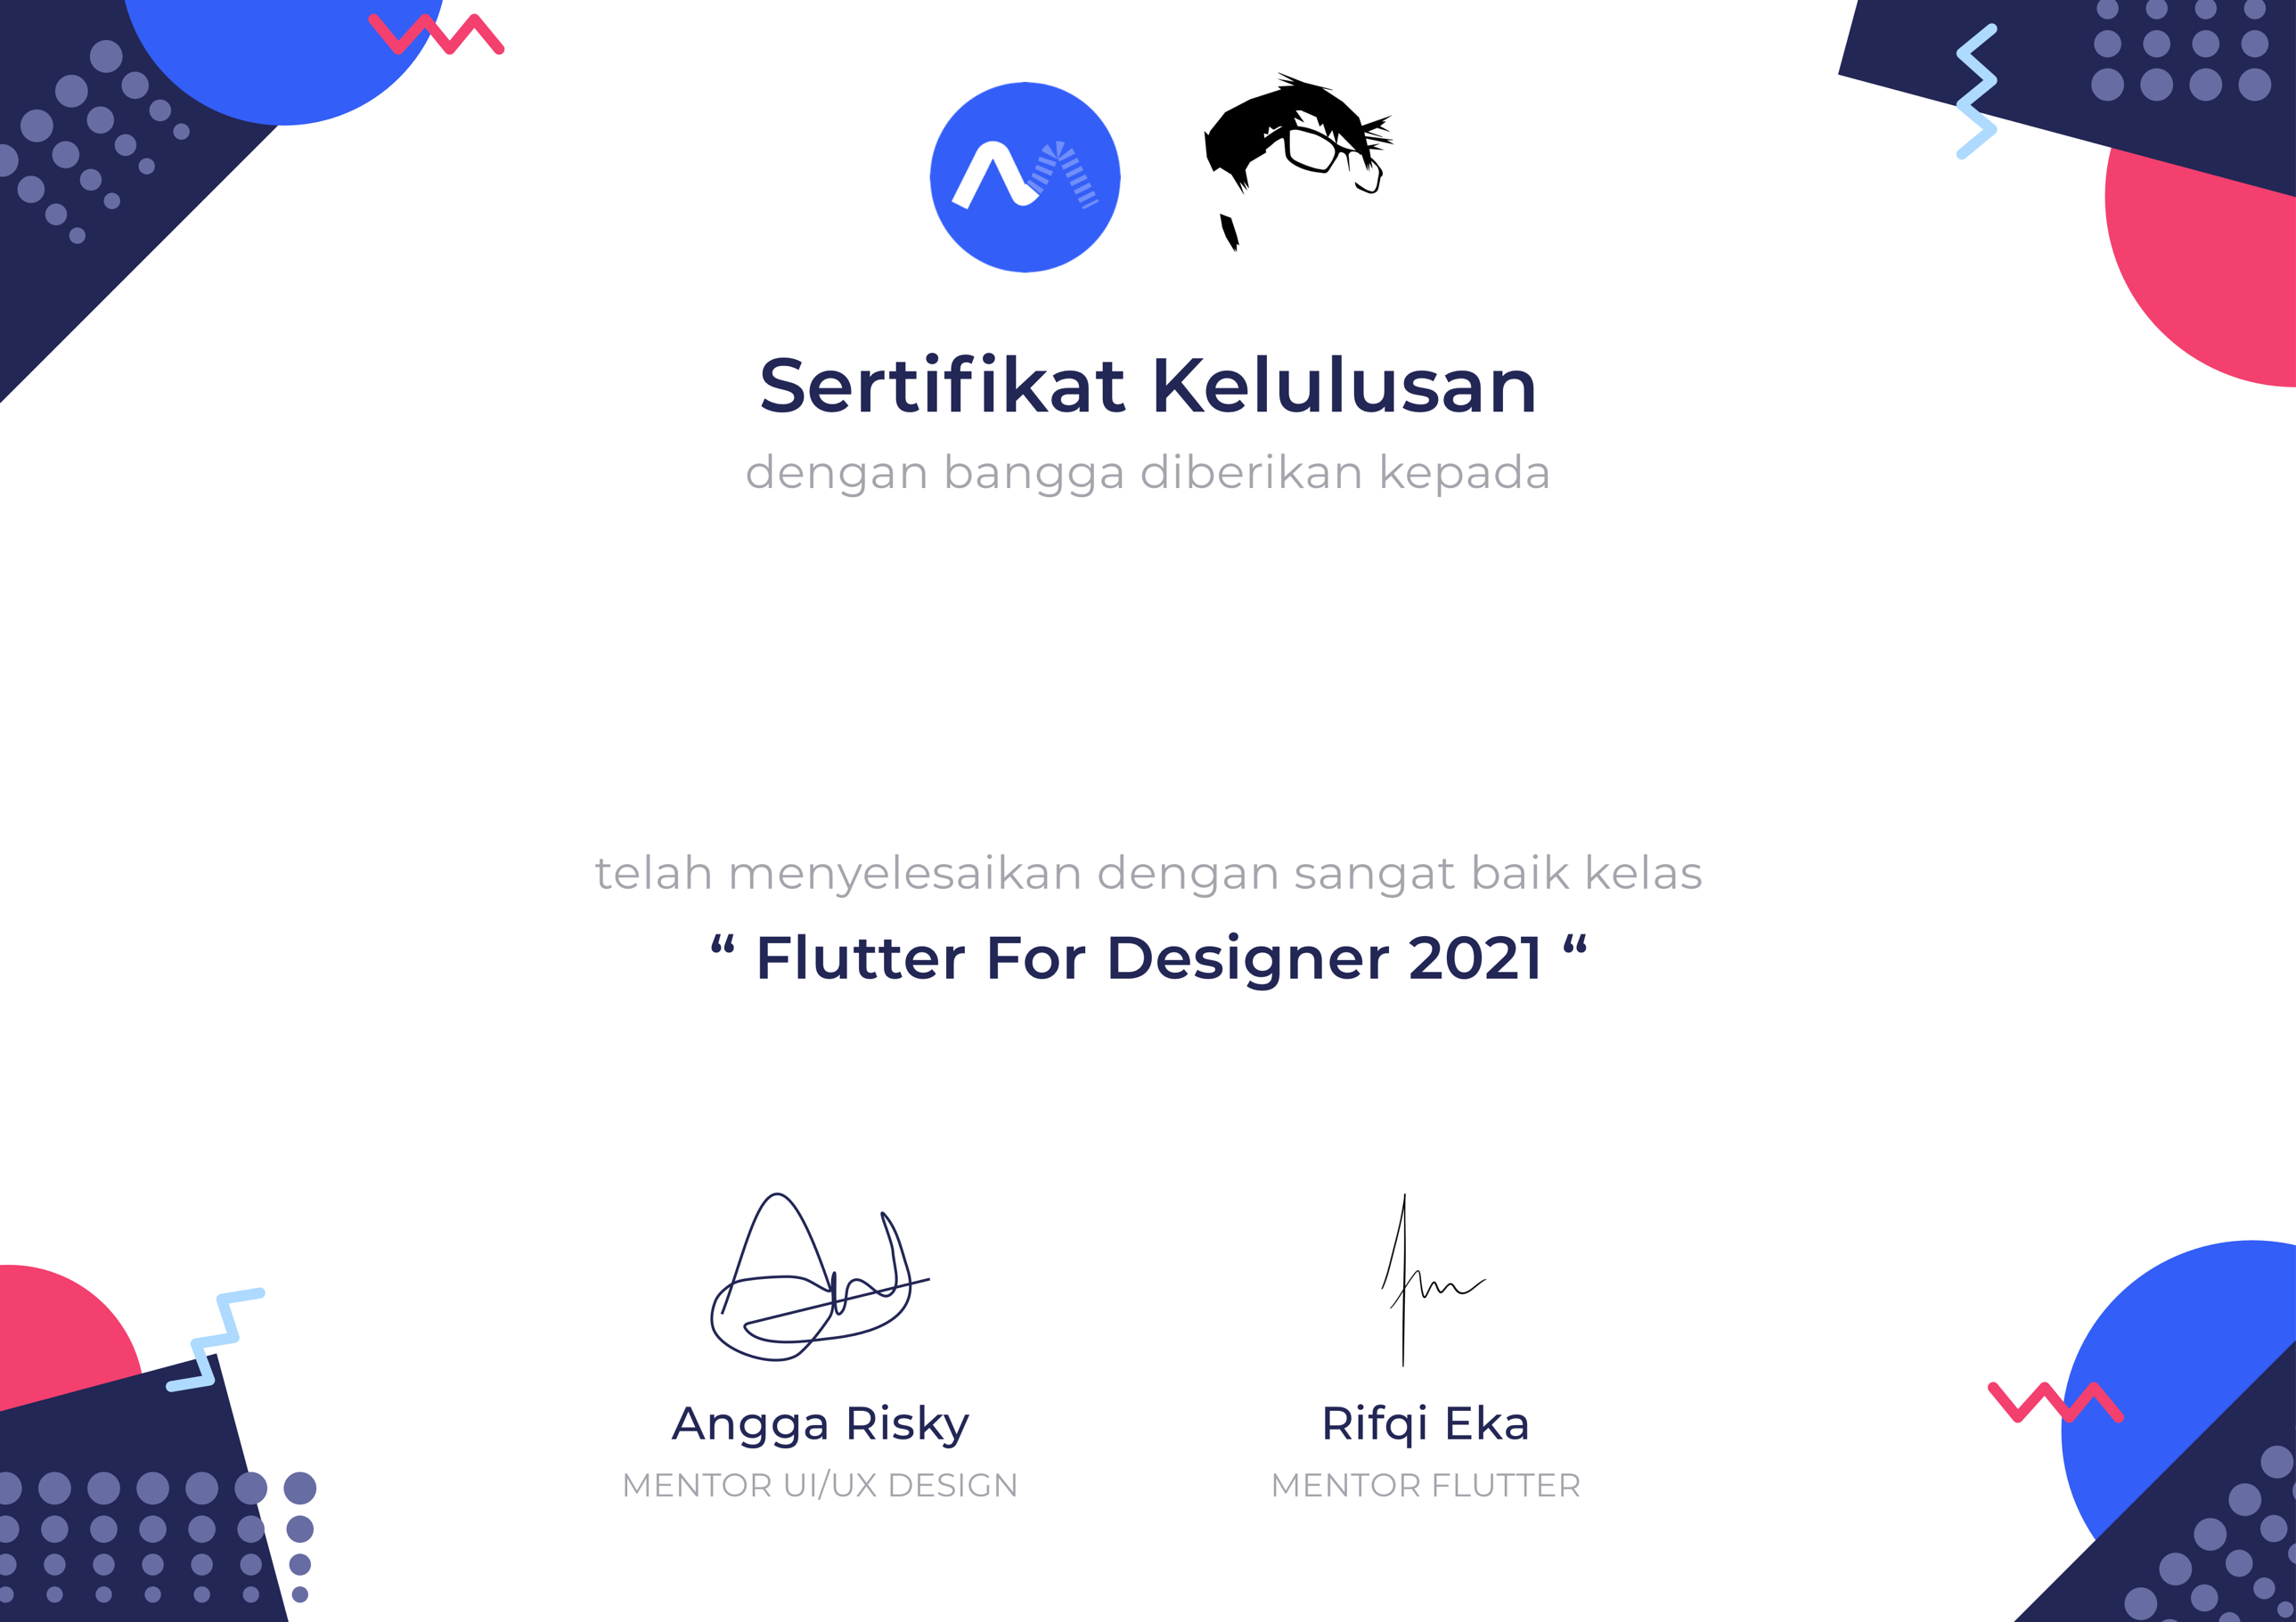 /storage/assets/images/certificates/sertifikat kelulusan kelas flutter for designer development buildwith angga.png BuildWith Angga